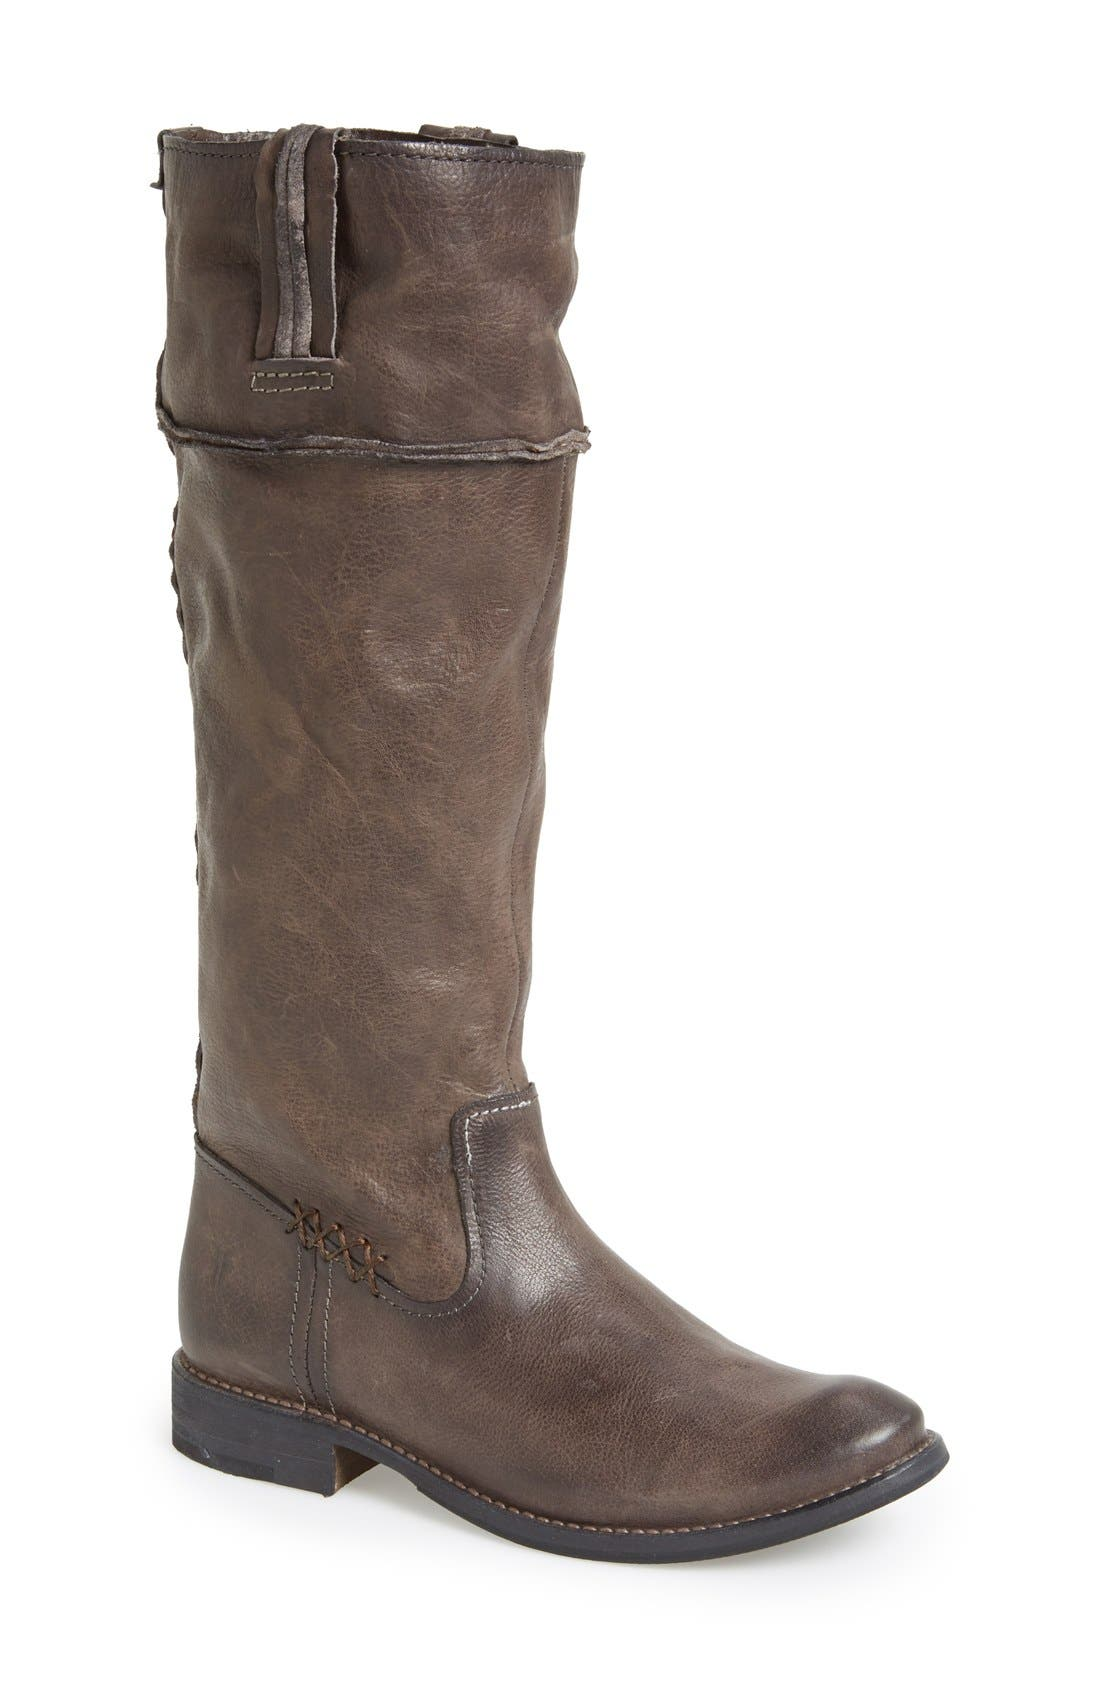 Alternate Image 1 Selected - Frye 'Shirley' Tall Boot (Women)